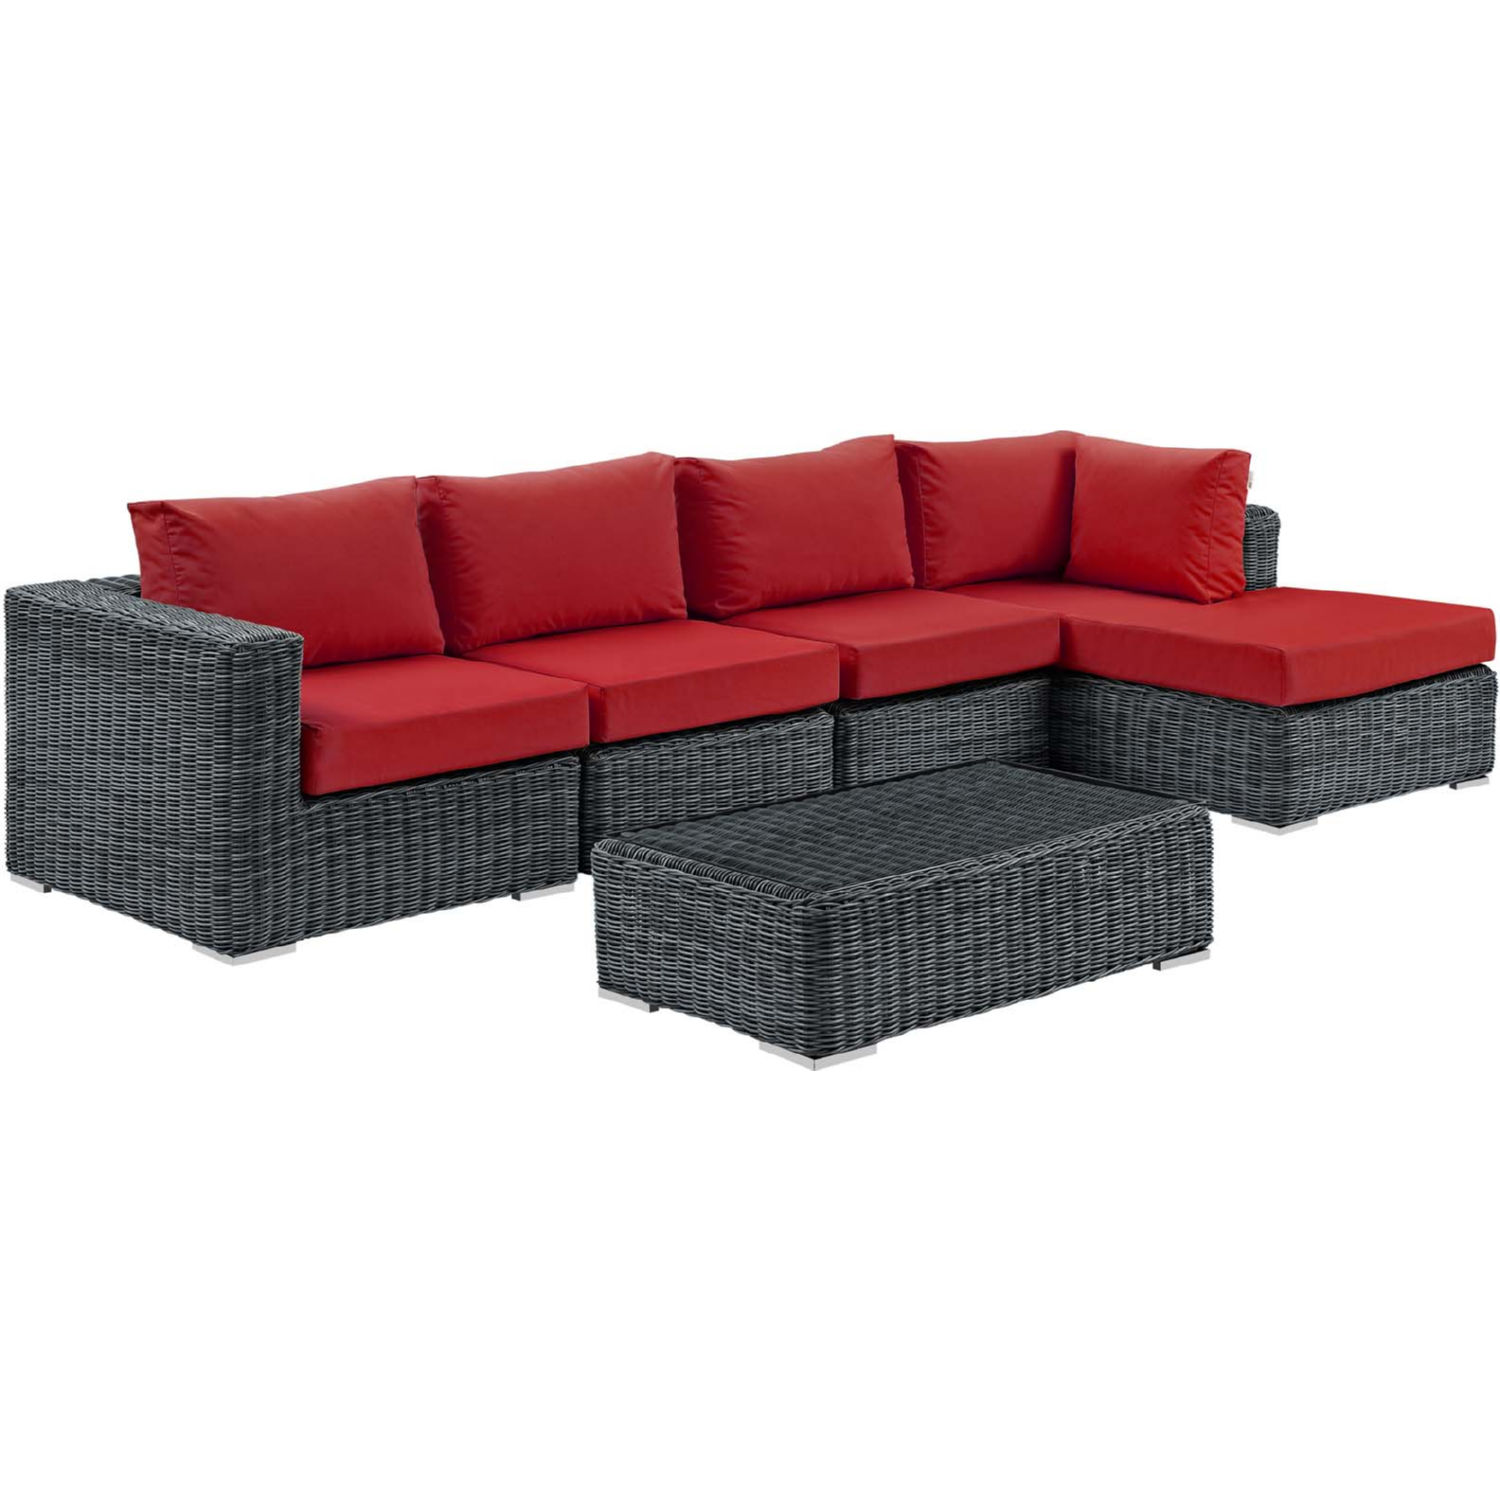 Summon 5 Piece Outdoor Sectional Sofa Set in PE Rattan & Red Sunbrella® by  Modway